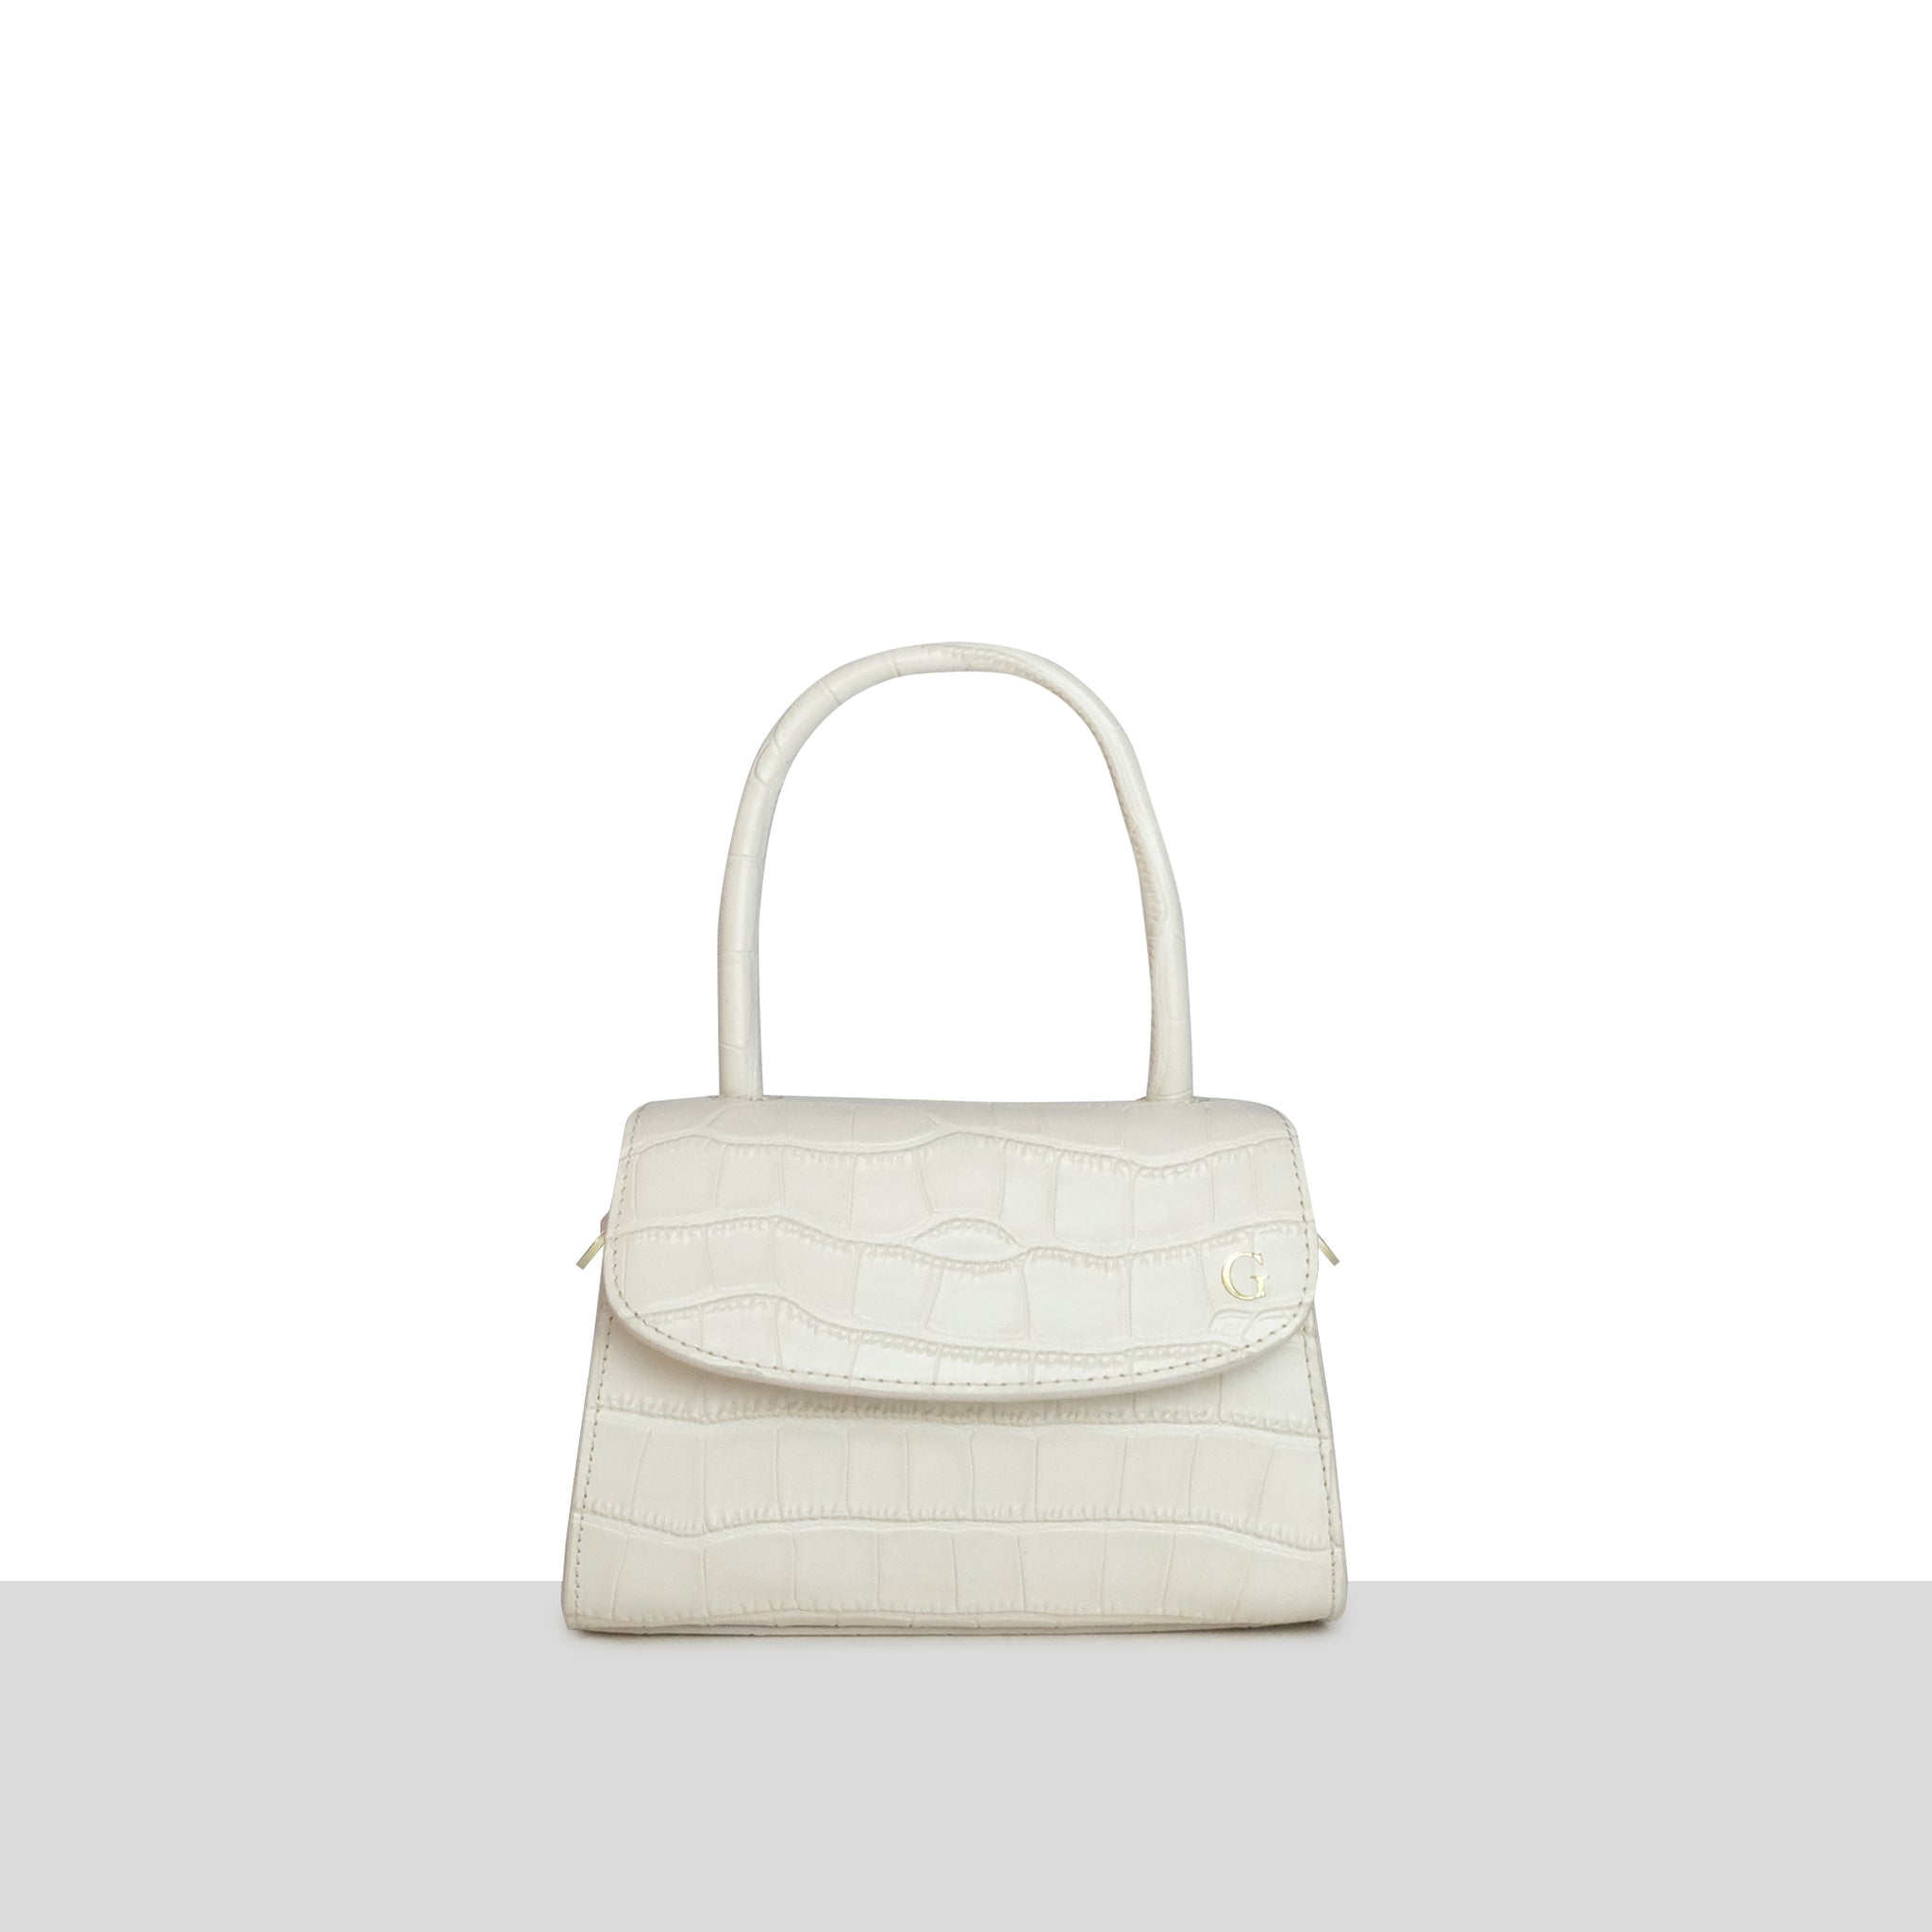 'LA' Cream Leather Croc  Grab Bag